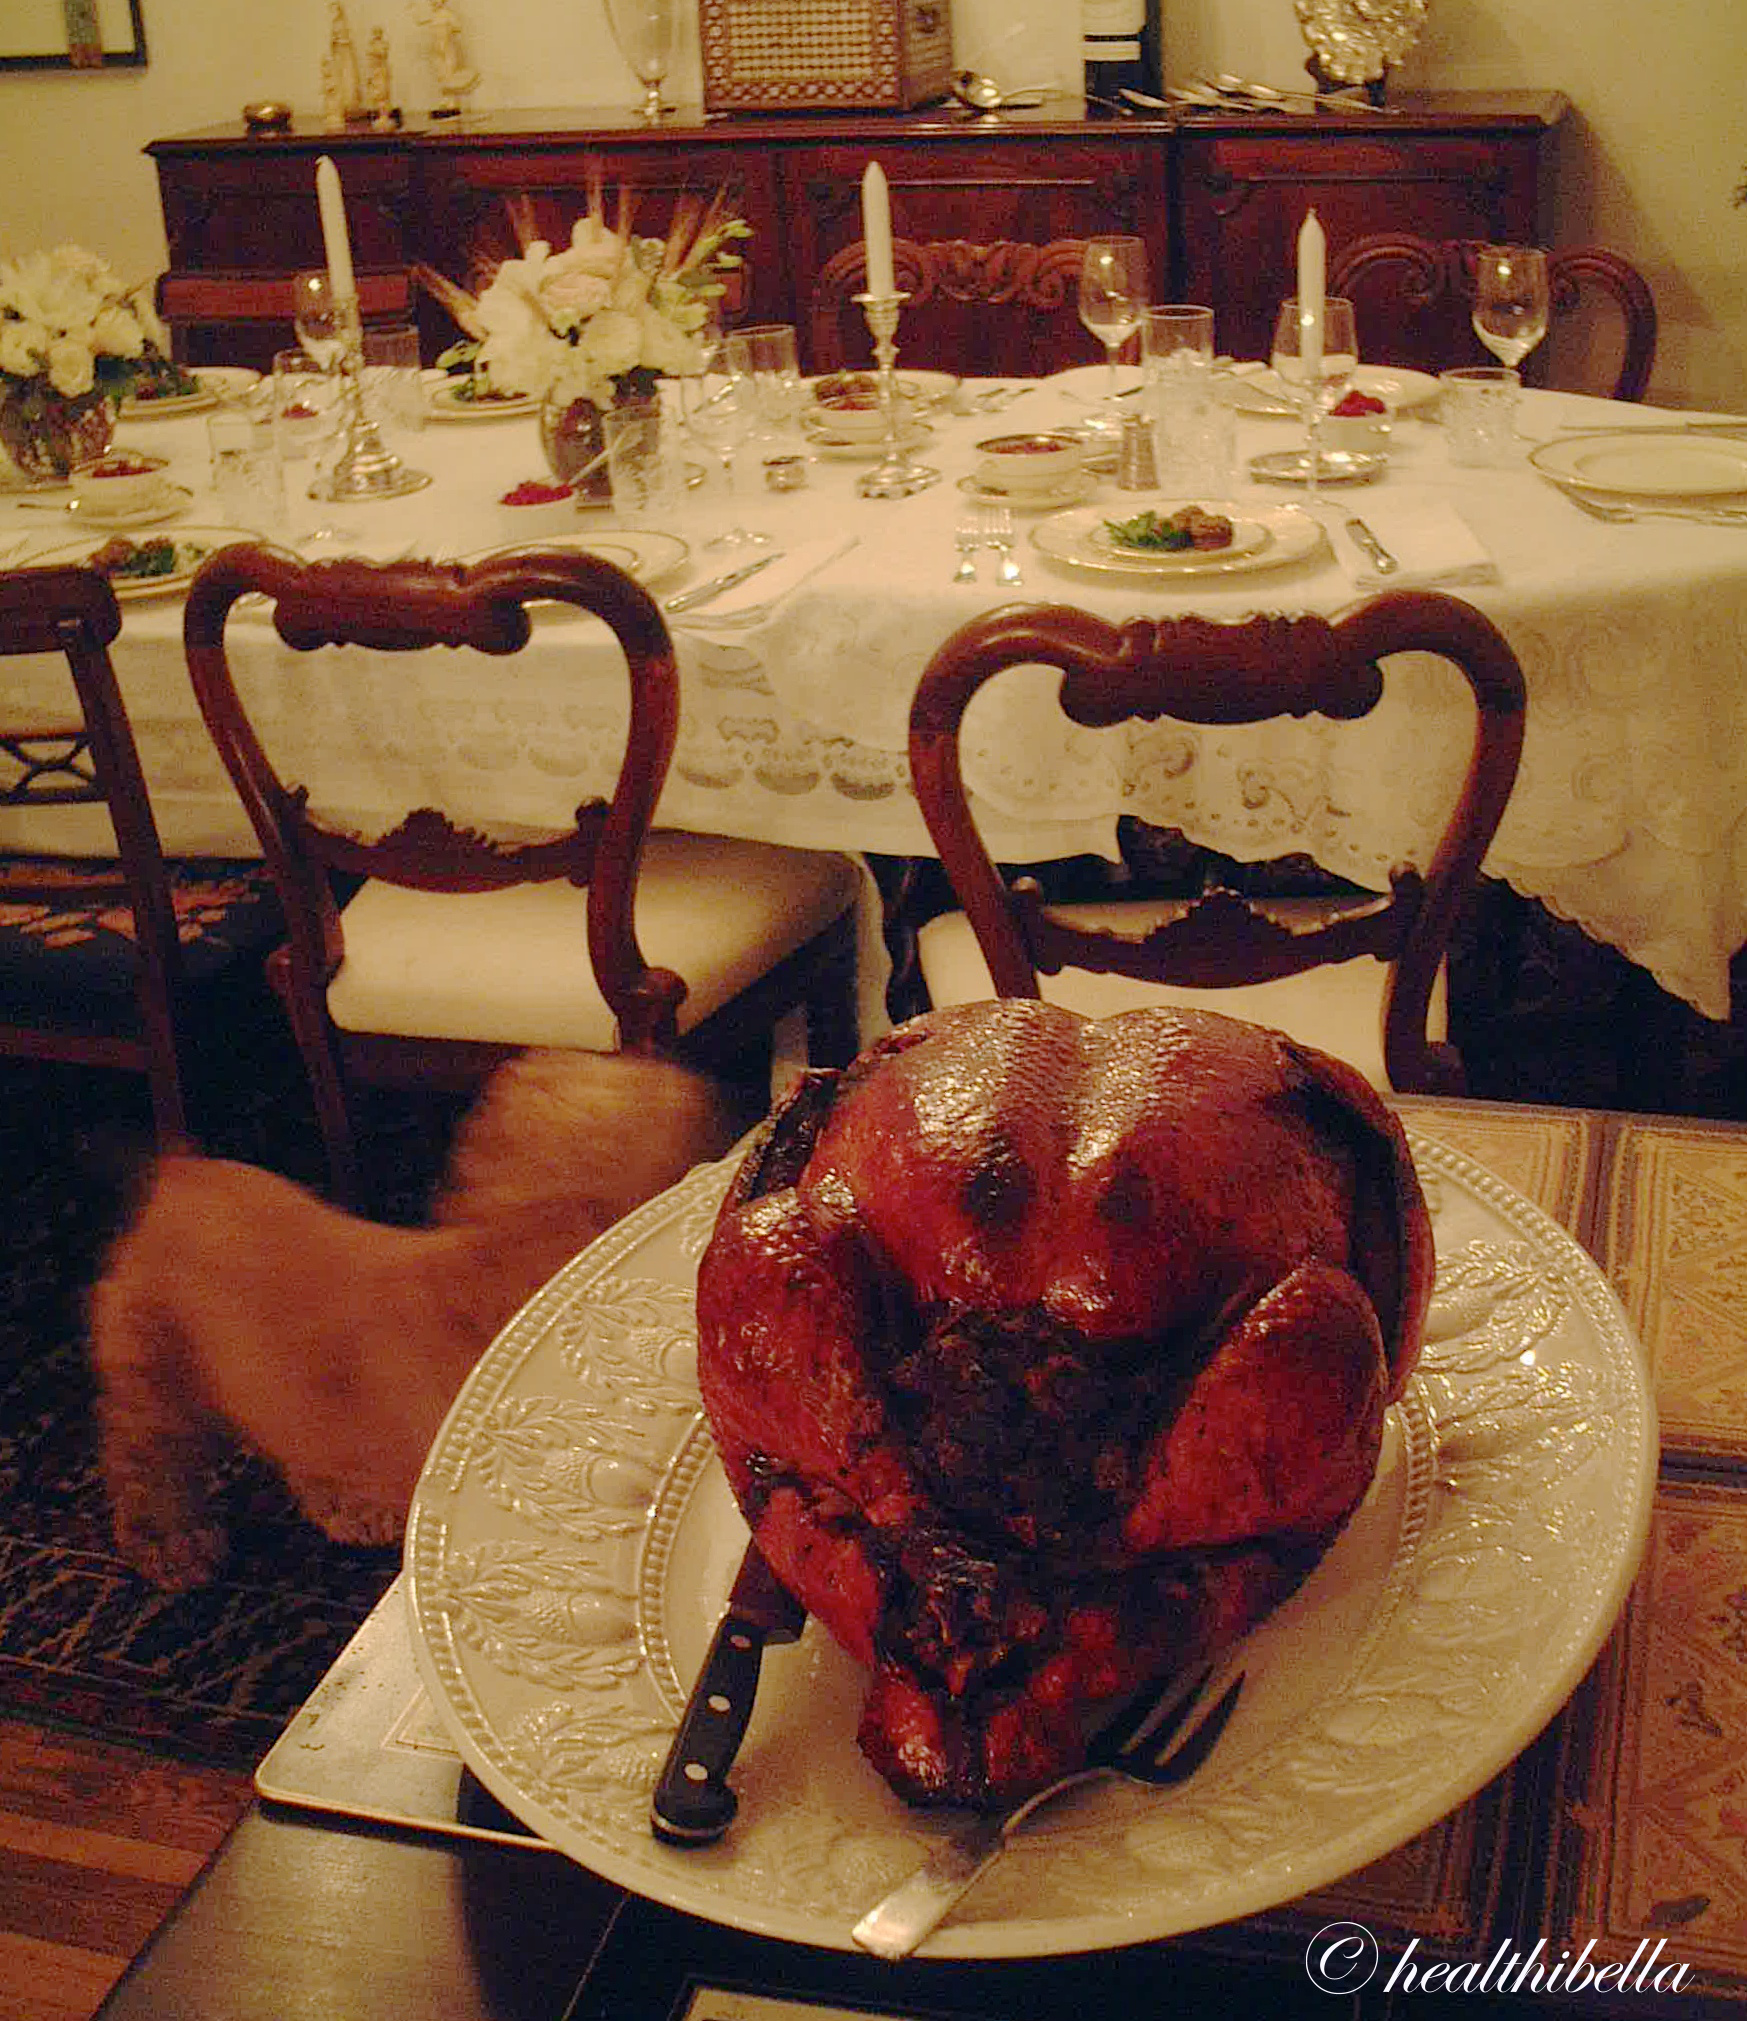 Throwback toThanksgiving in the US